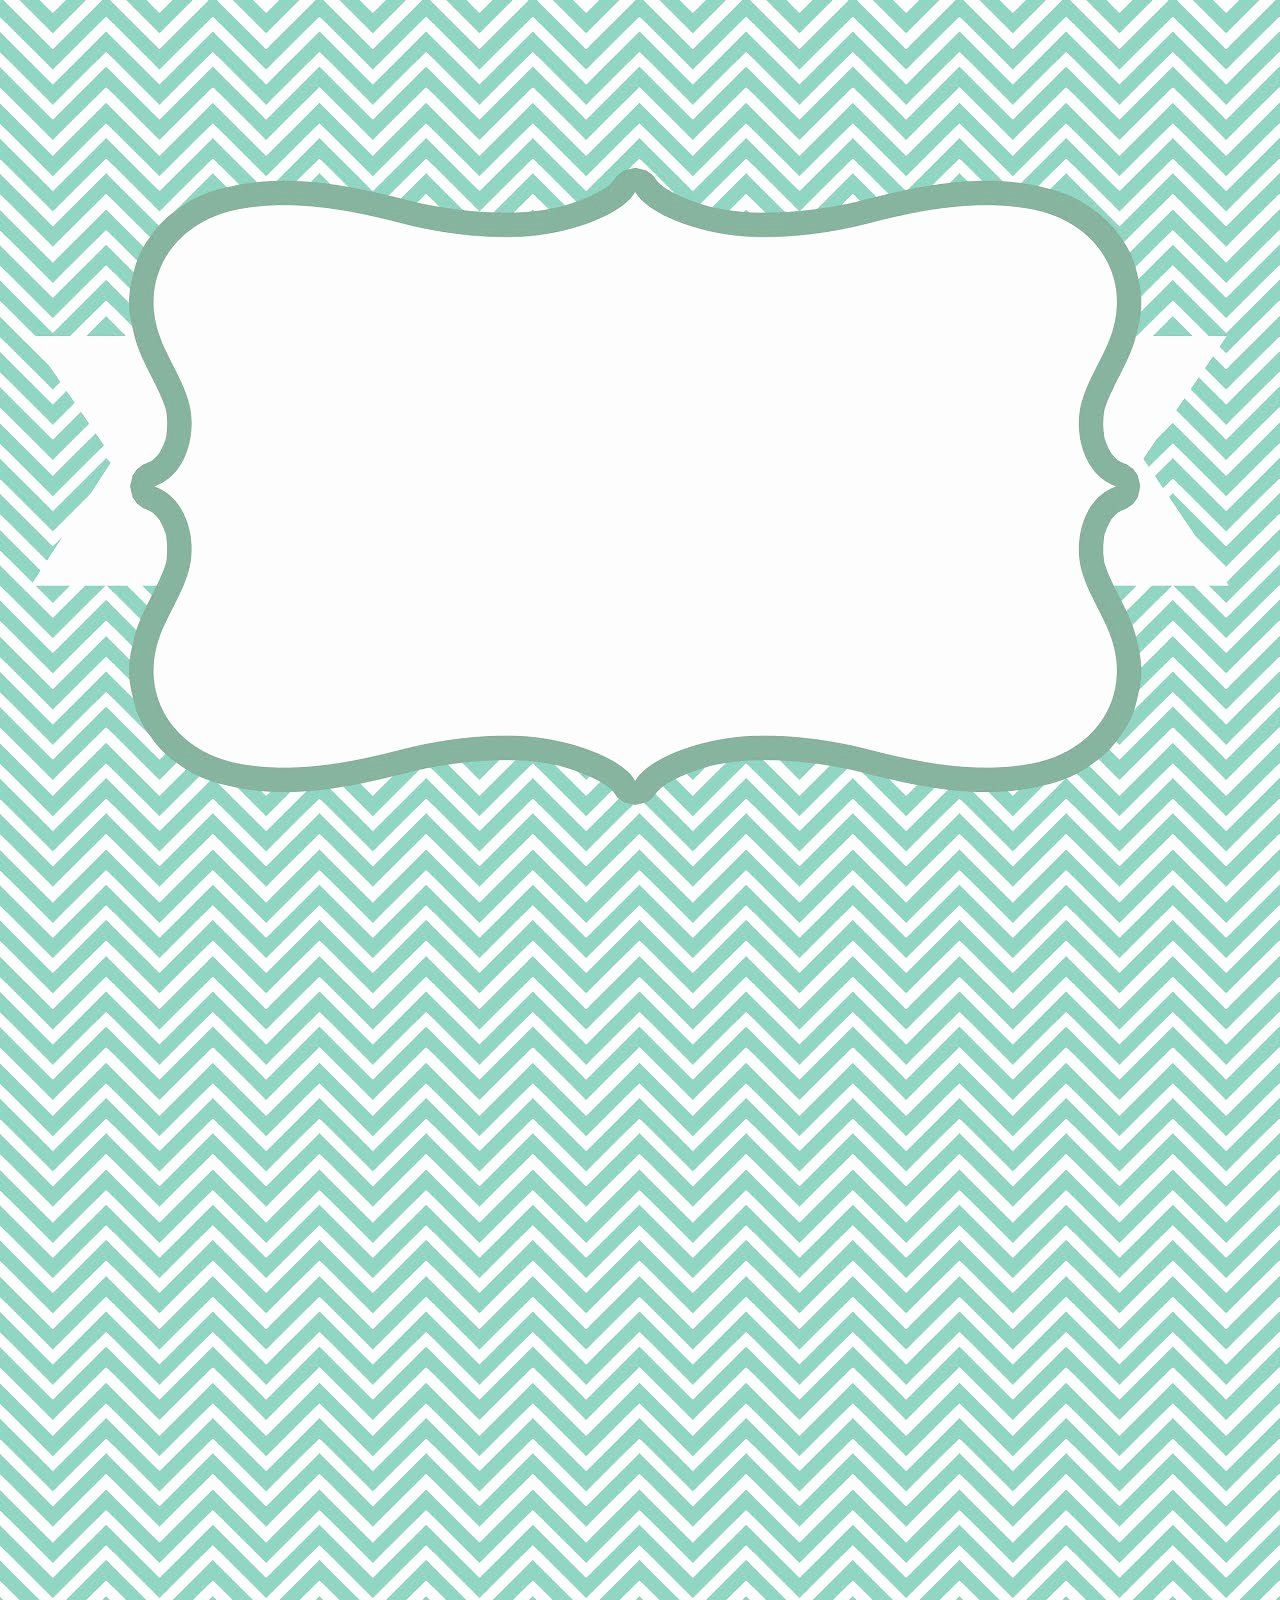 Free Binder Cover Templates Beautiful Seventh and Bliss Binder Covers Freebie